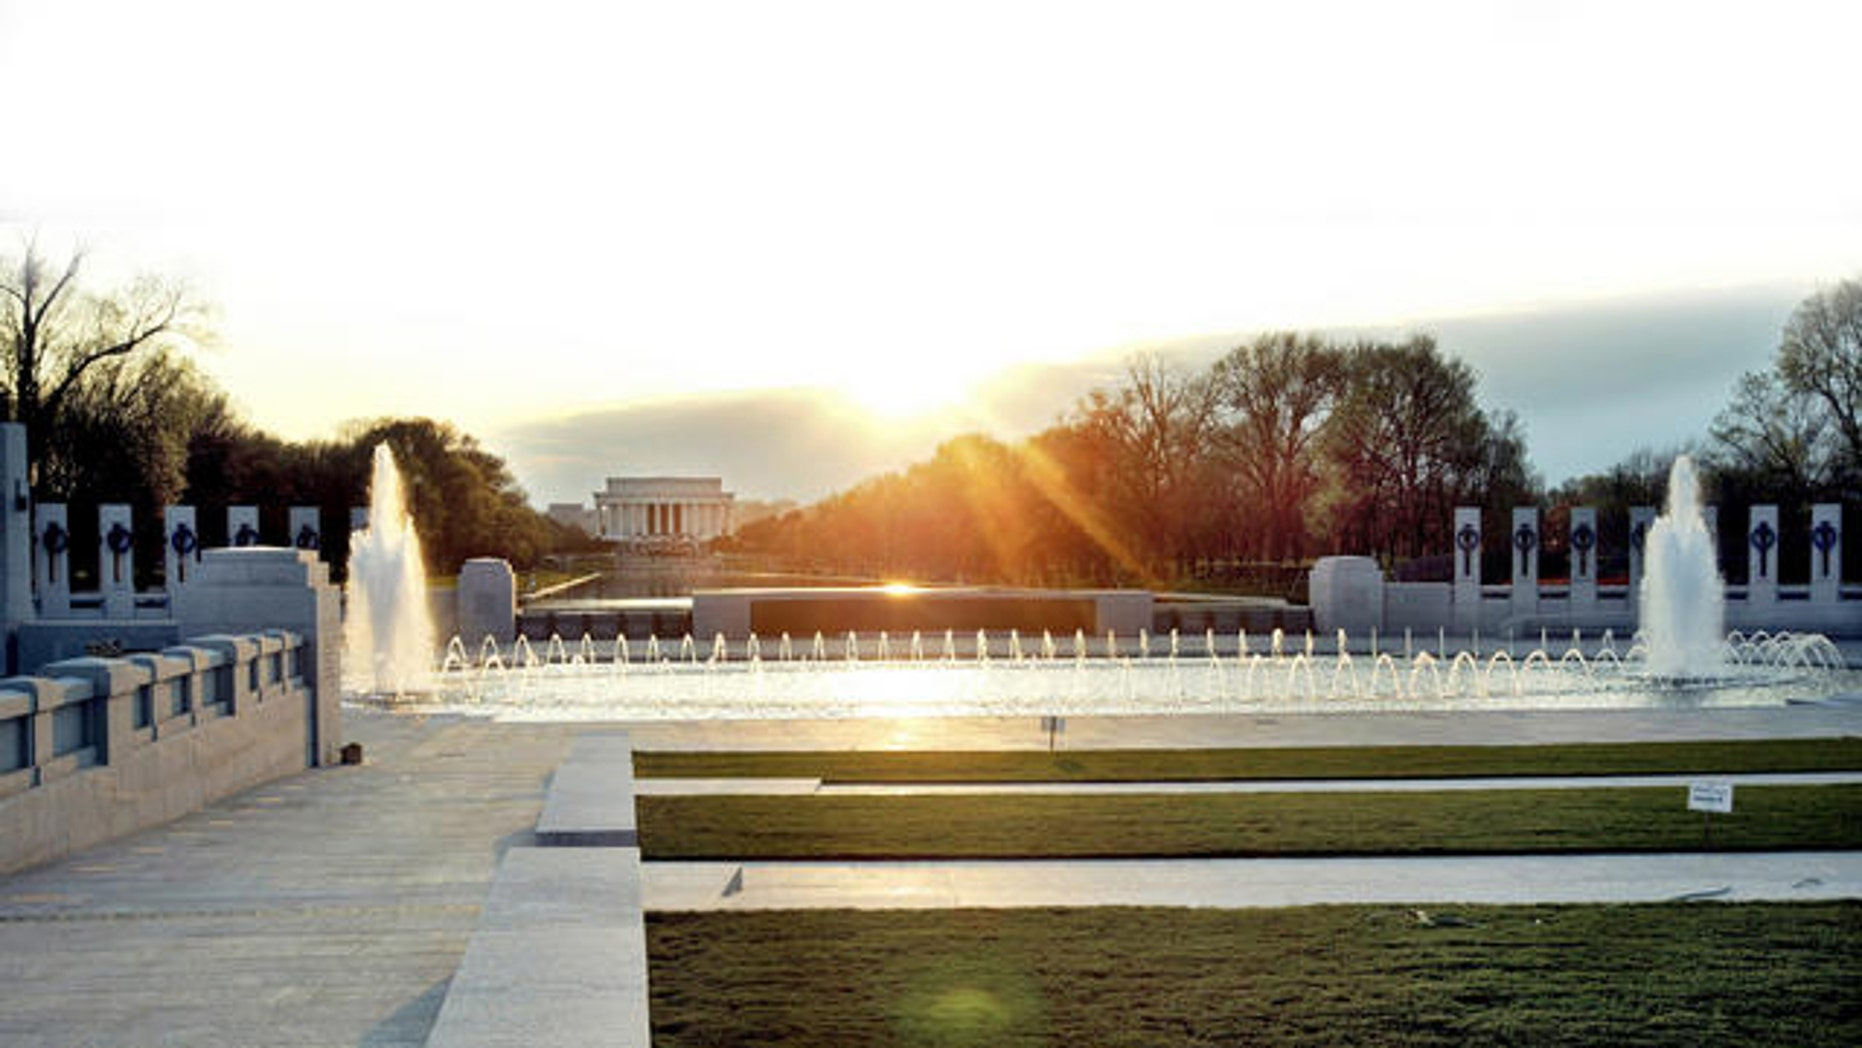 Shown here is the World War II Memorial in Washington, D.C.